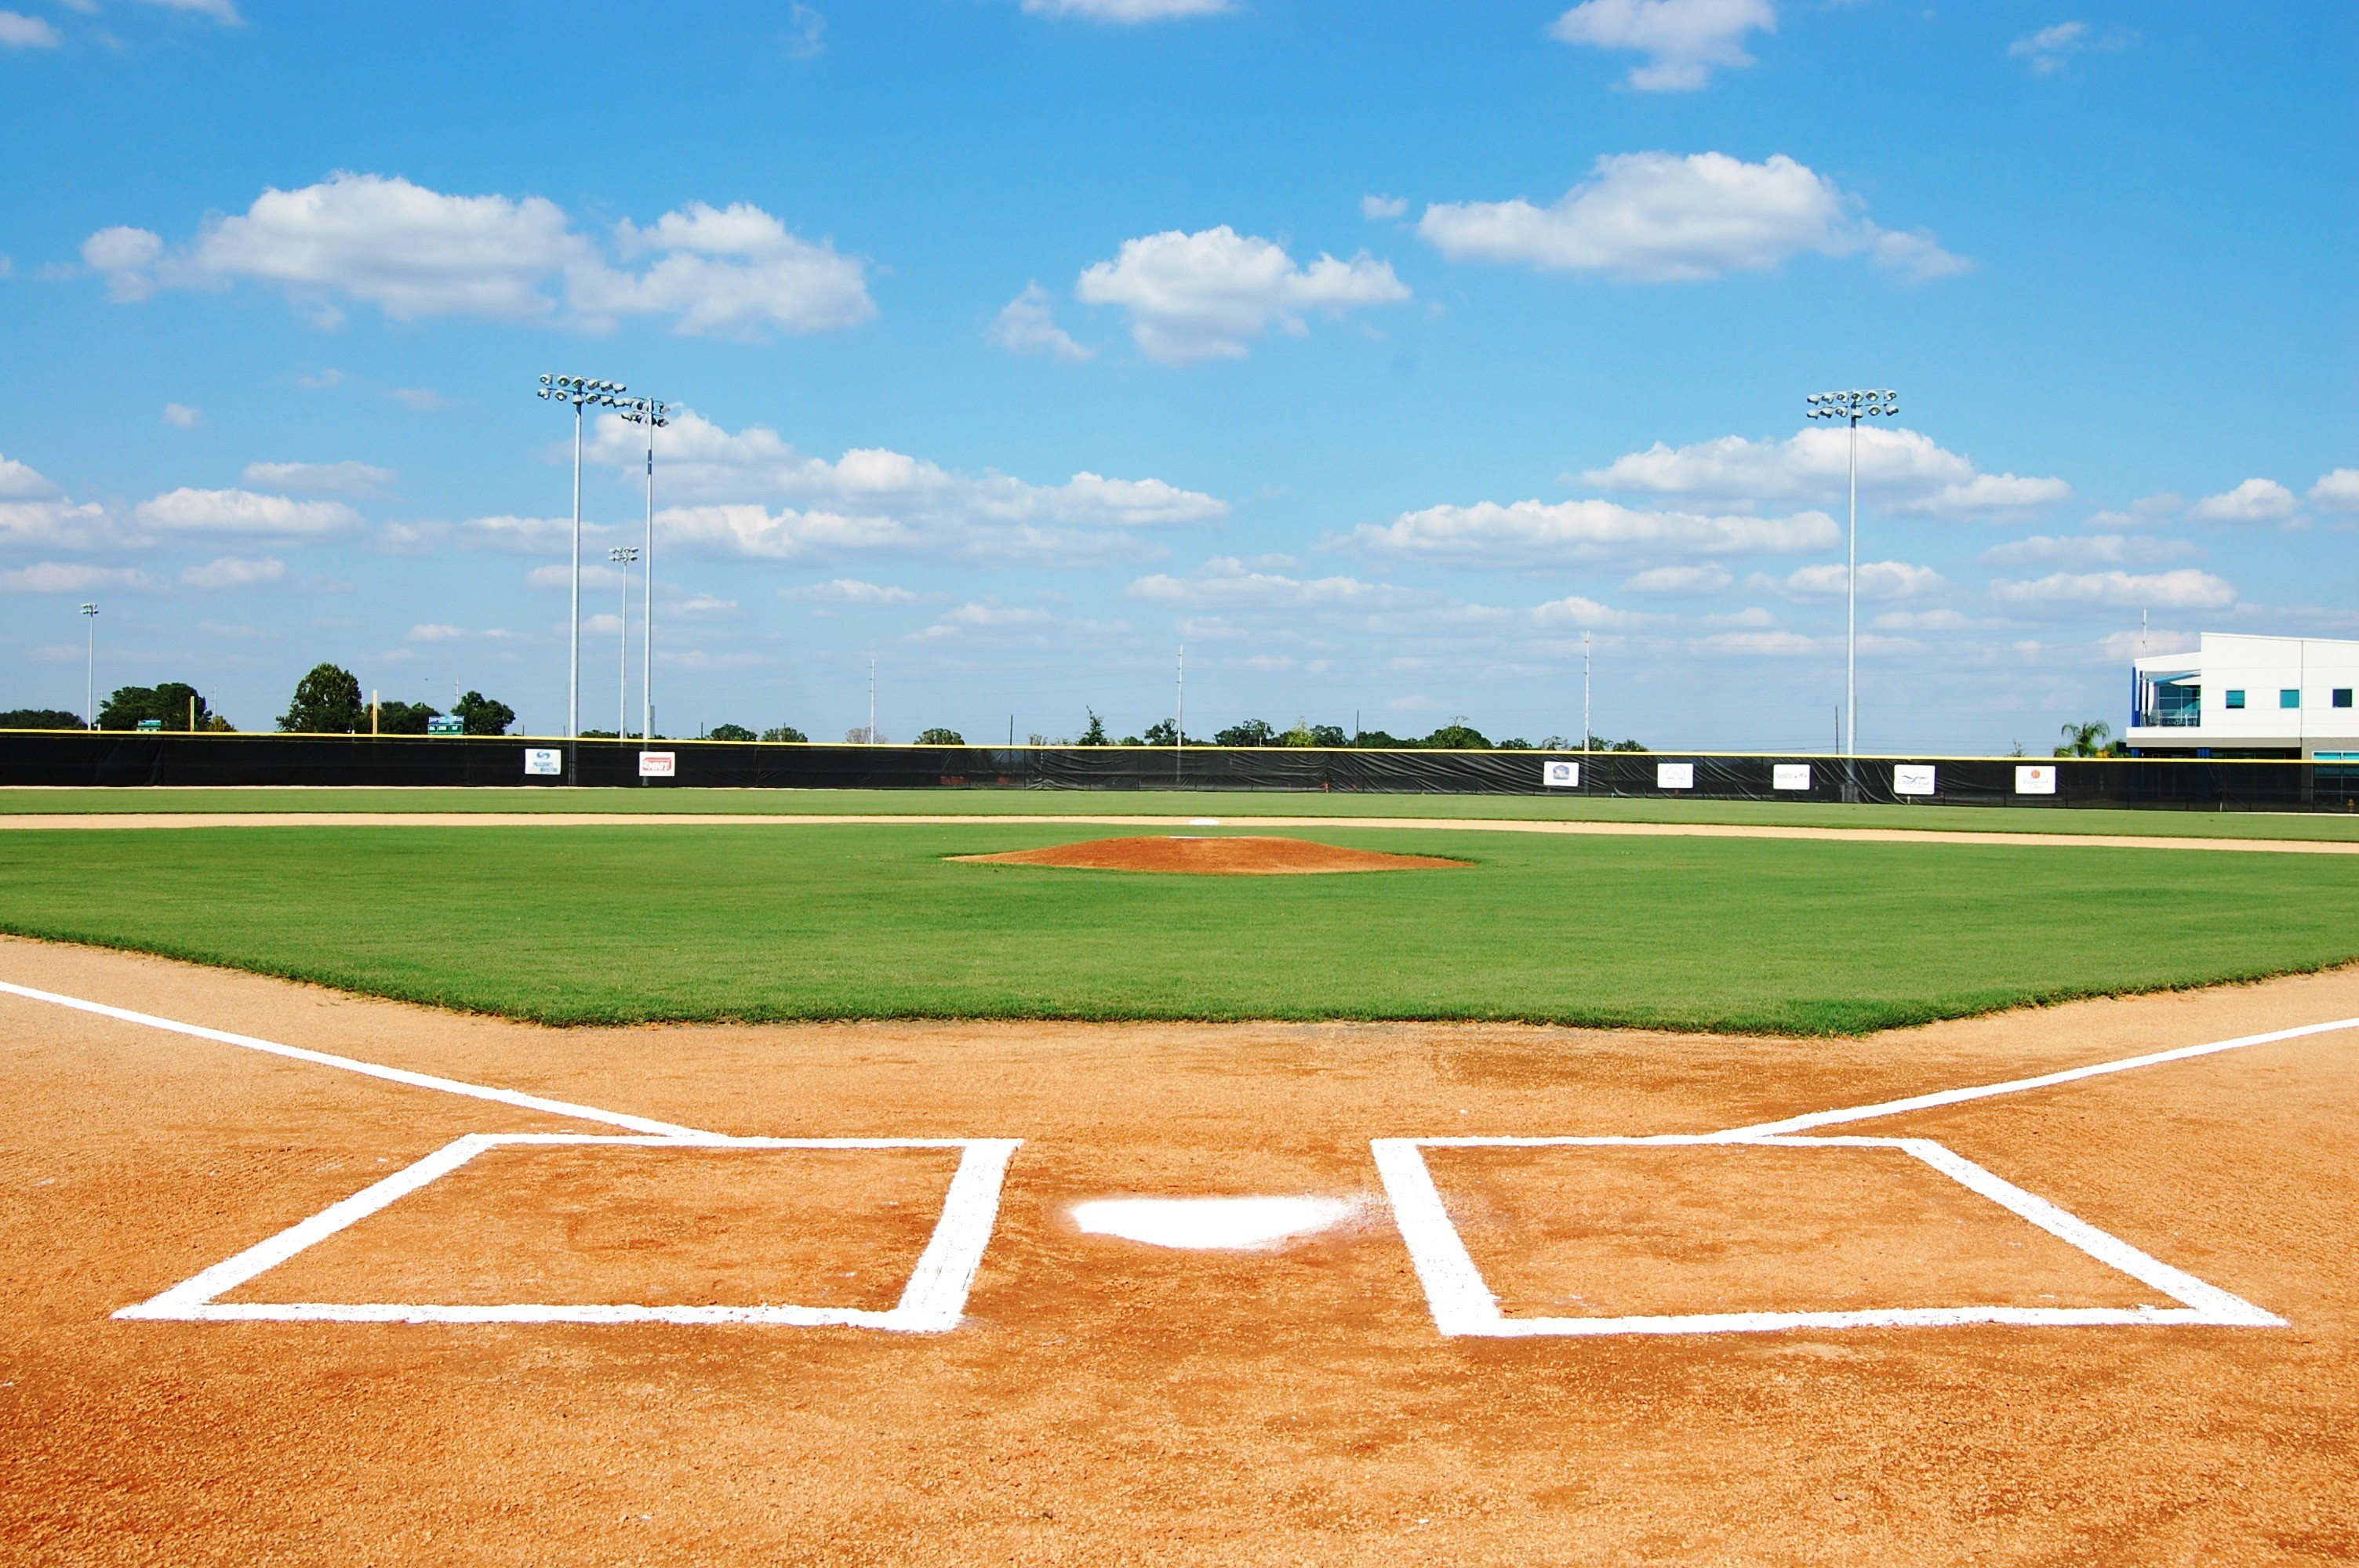 Res: 3008x2000, nice baseball fields wallpaper background hd wallpapers high definition  amazing cool mac tablet download free 3008×2000 Wallpaper HD